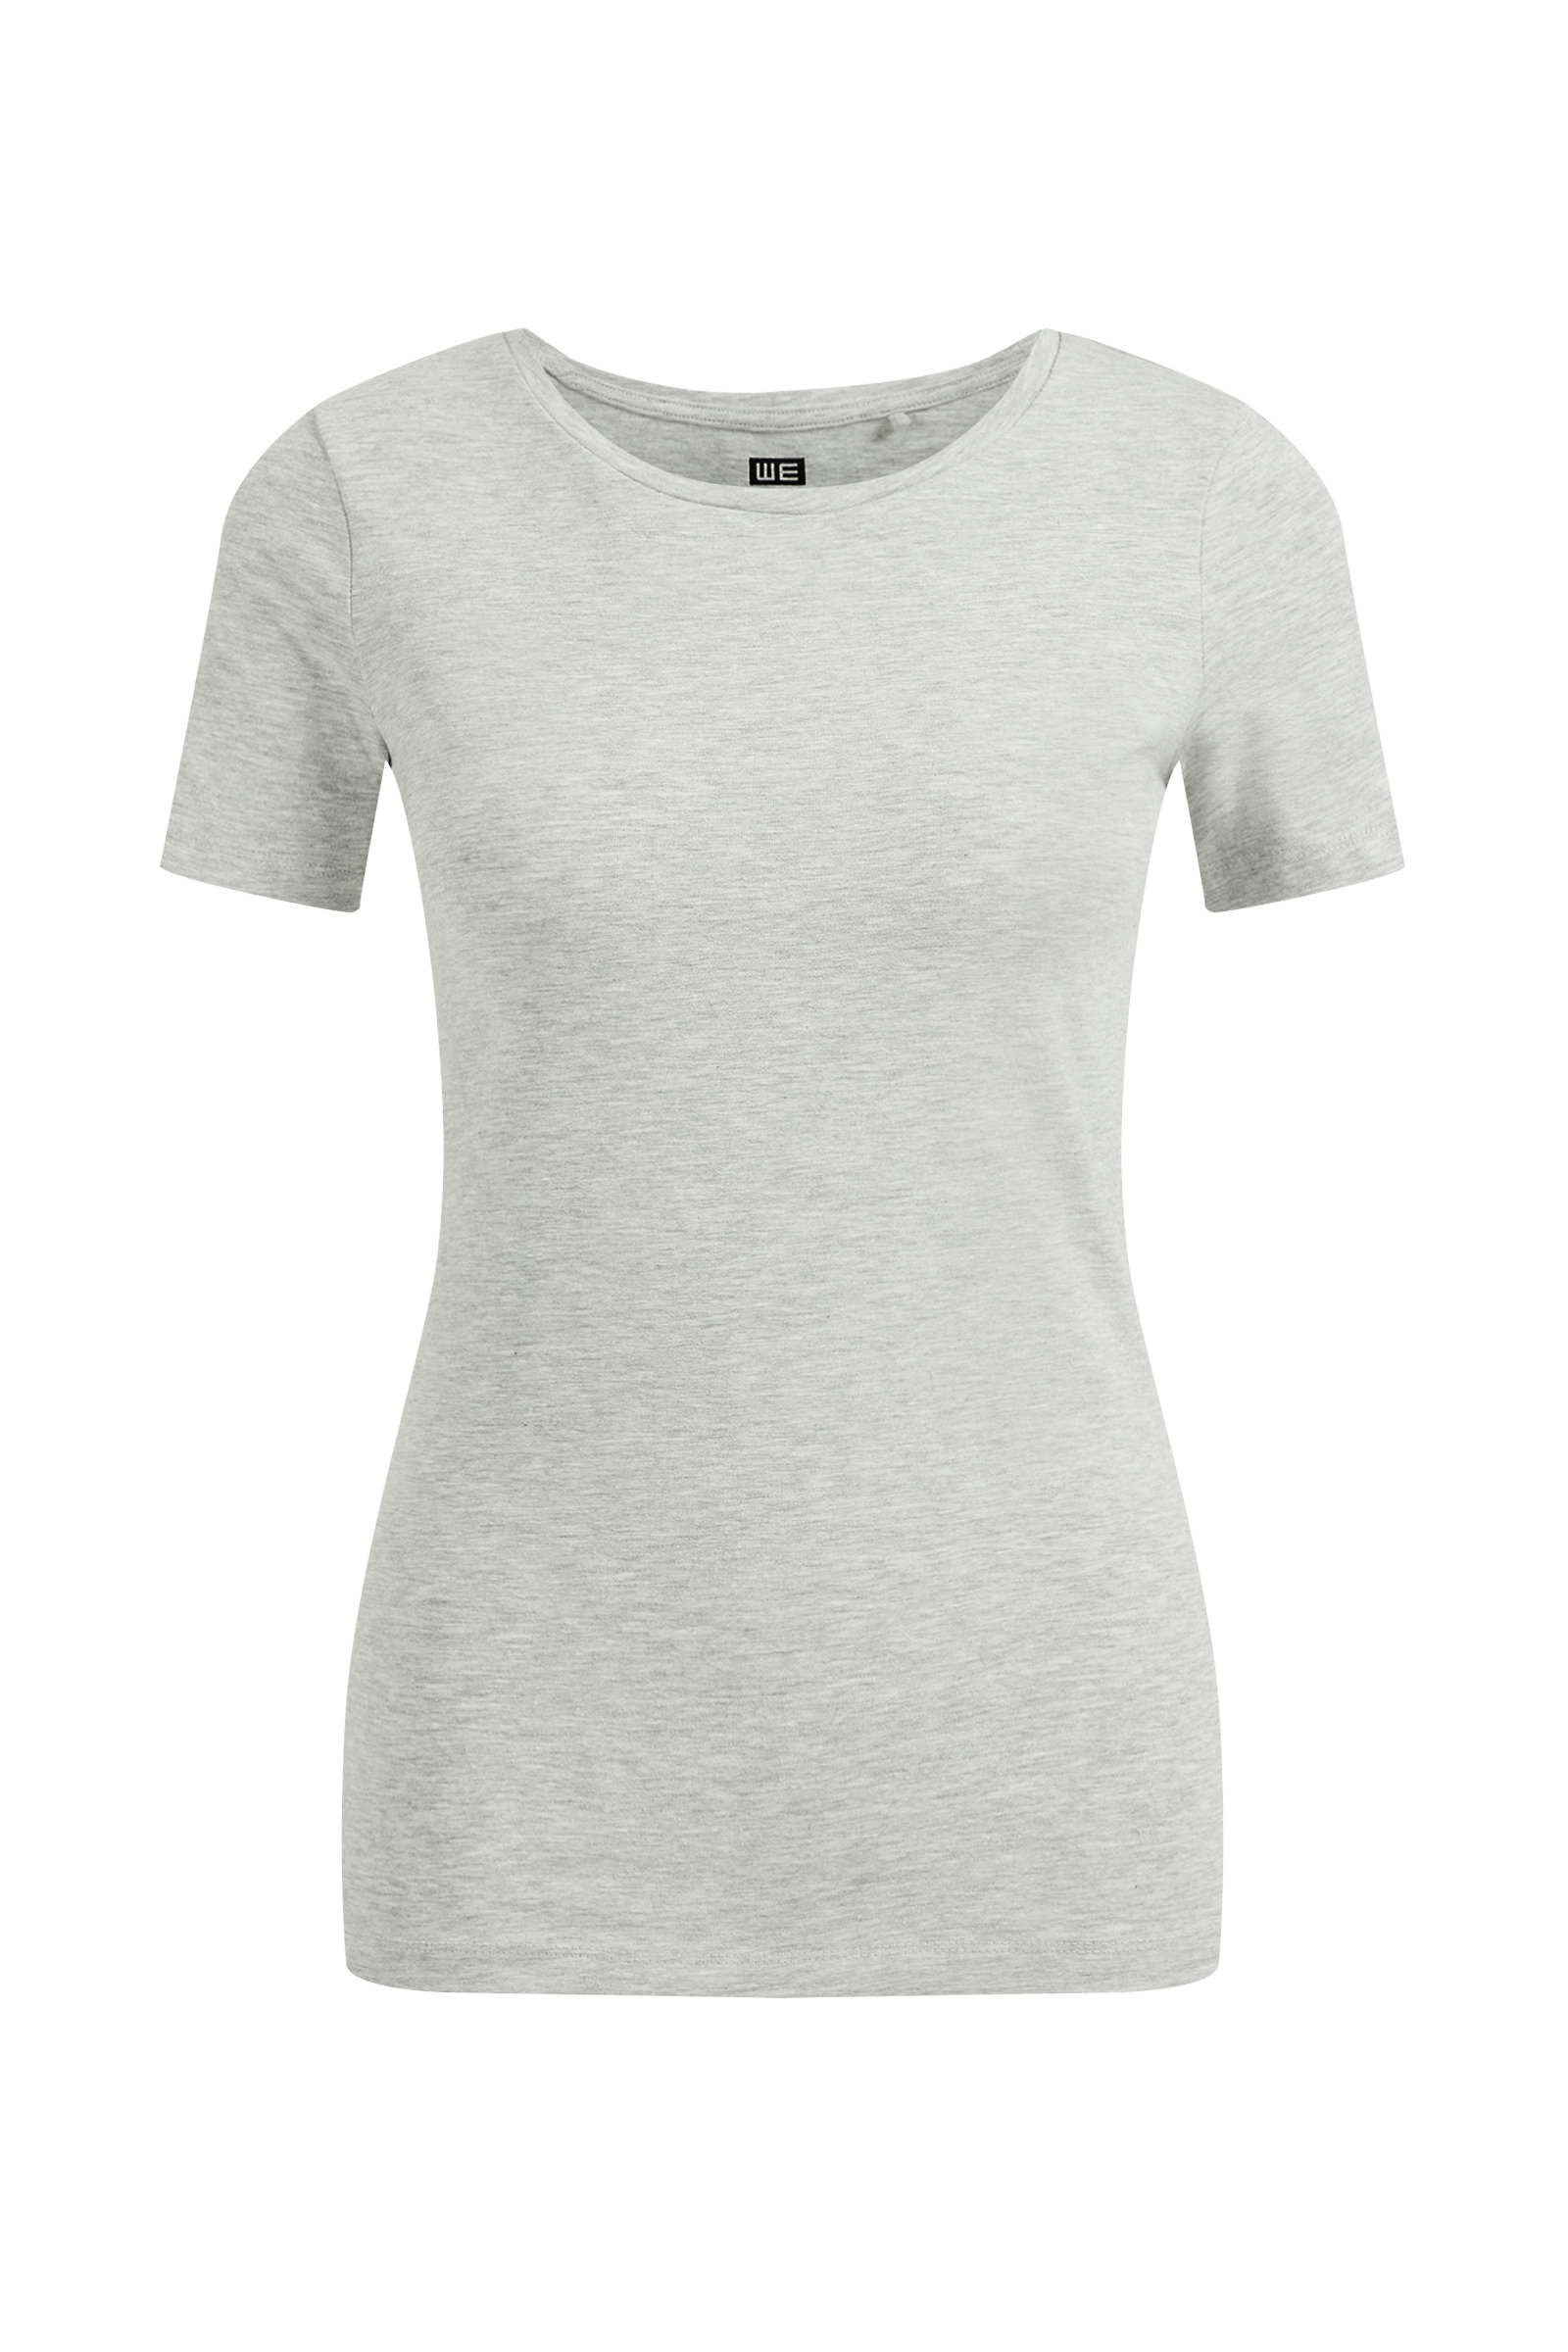 Dames organic cotton t-shirt